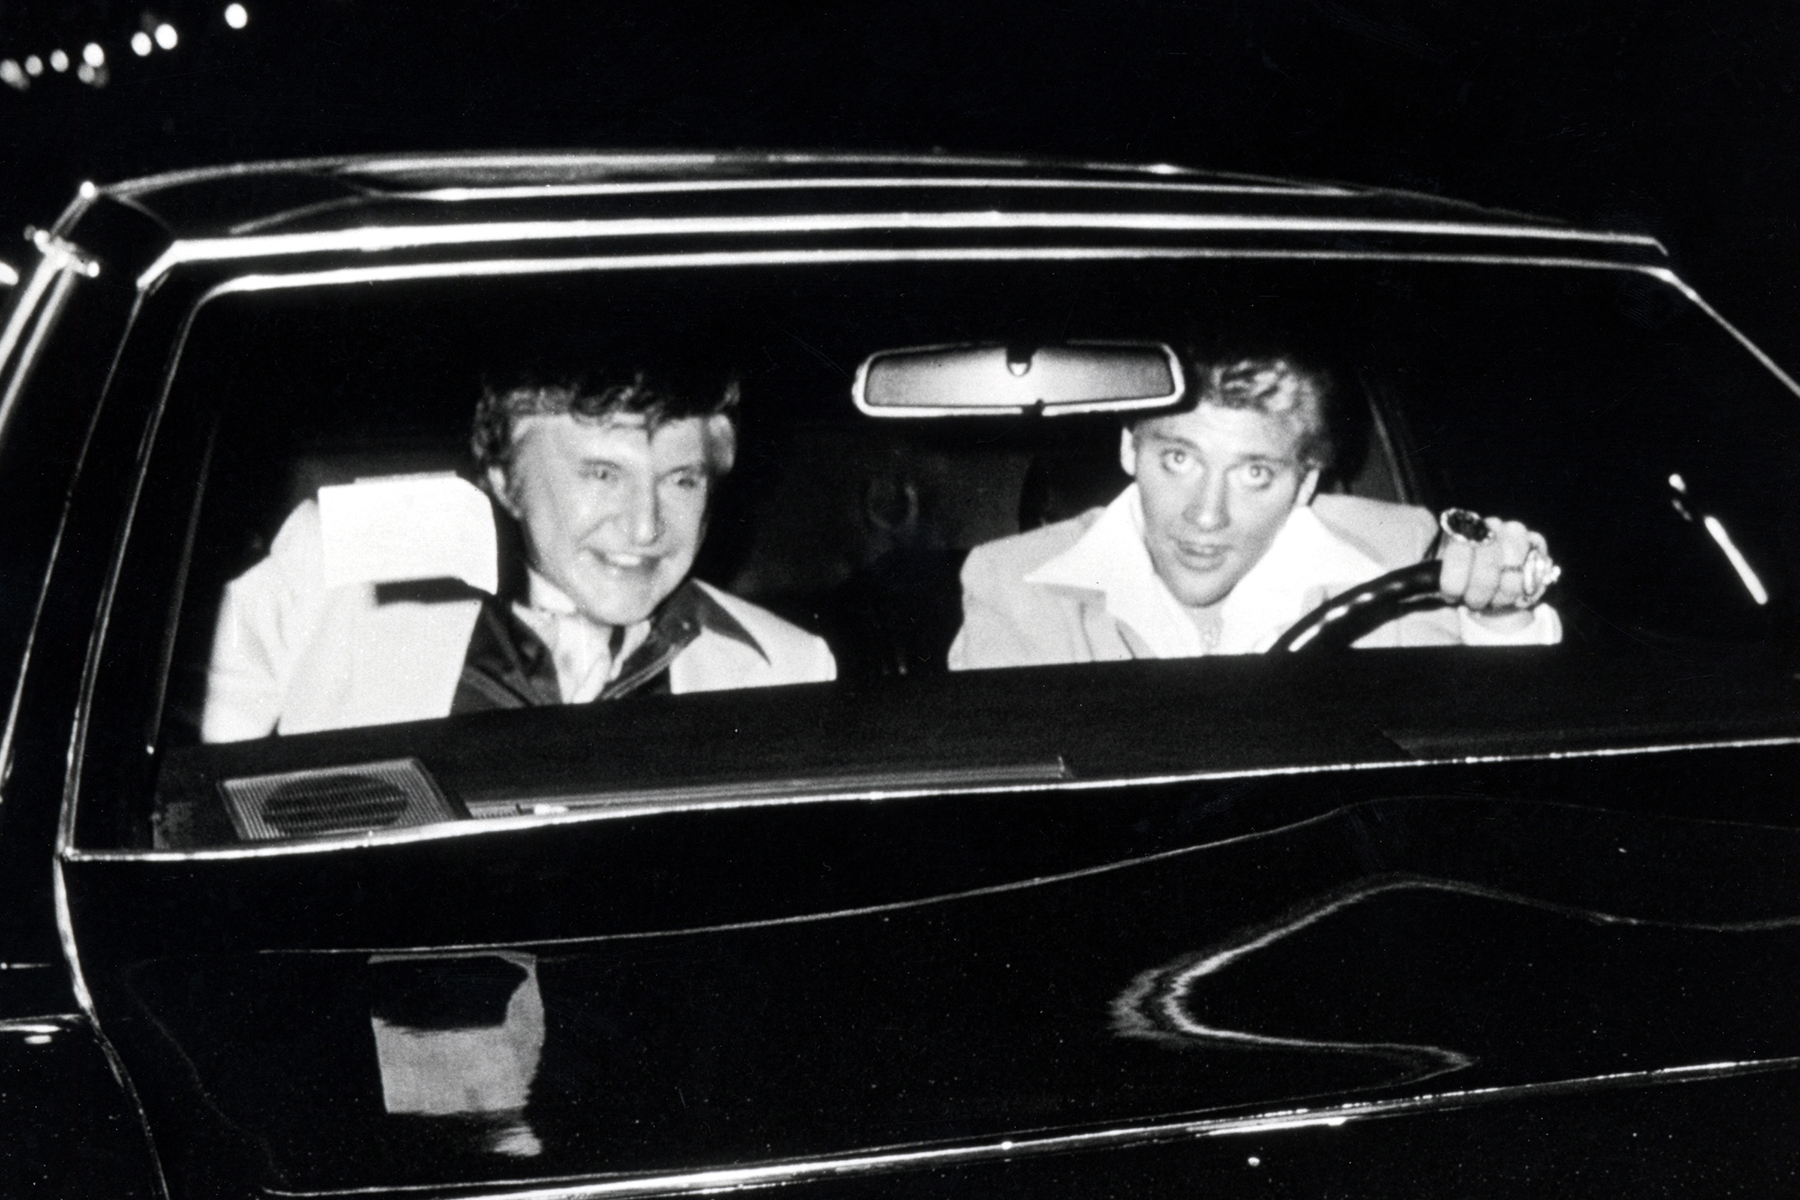 Liberace and Scott Thorson at La Cage Aux Folles in Hollywood on April 21, 1981 in Hollywood, California